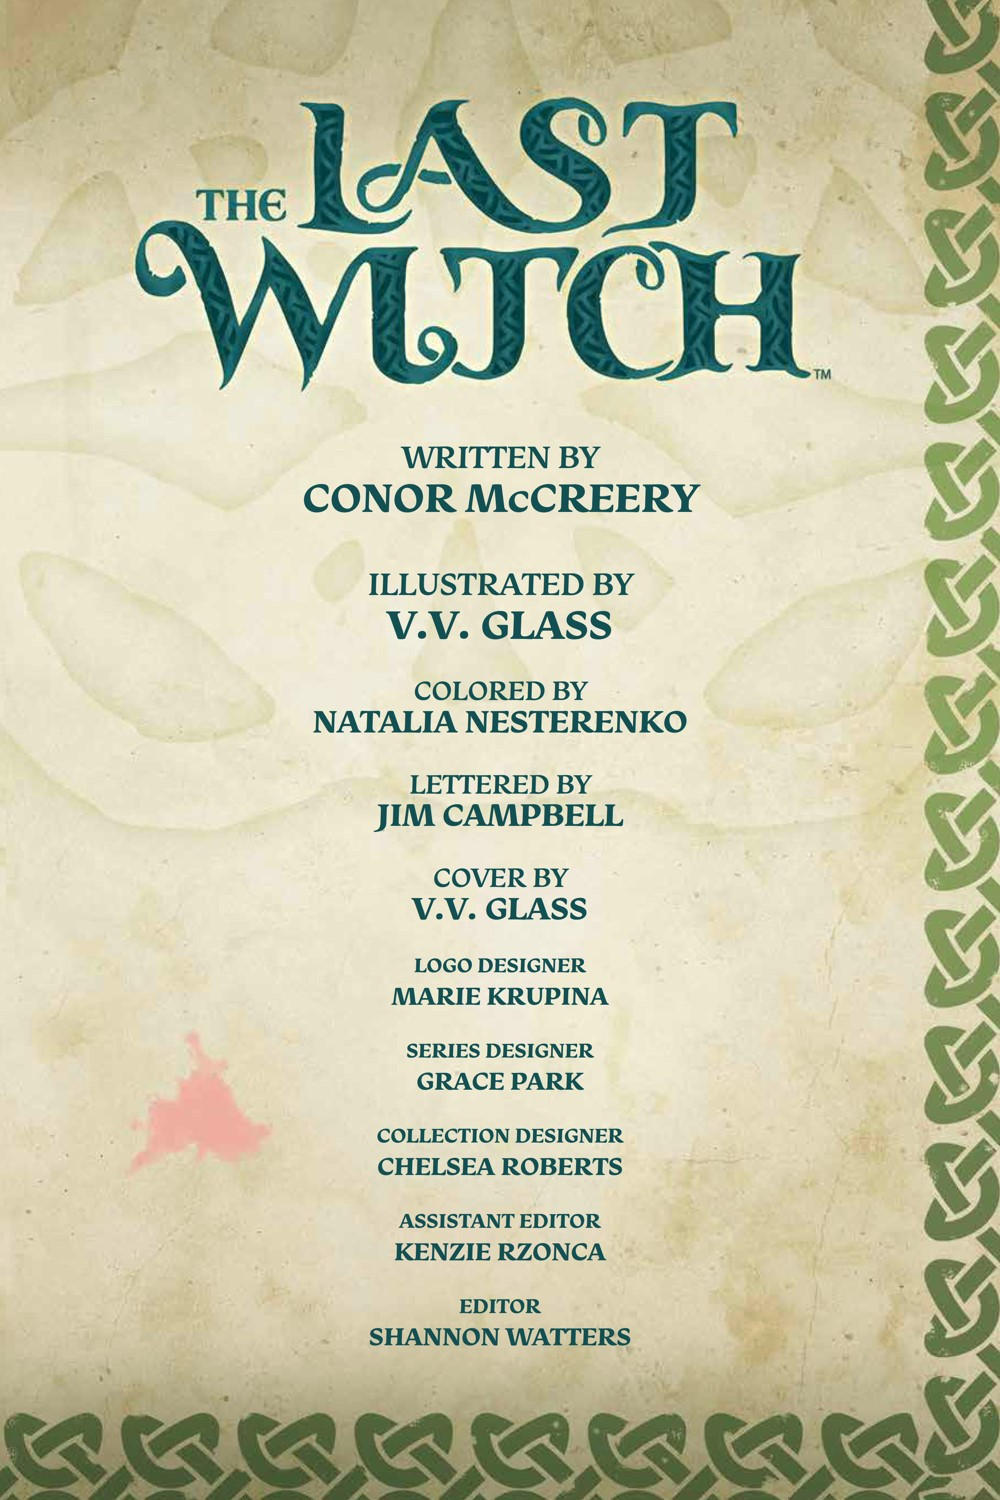 LastWitch_SC_PRESS_5 ComicList Previews: THE LAST WITCH FEAR AND FIRE GN